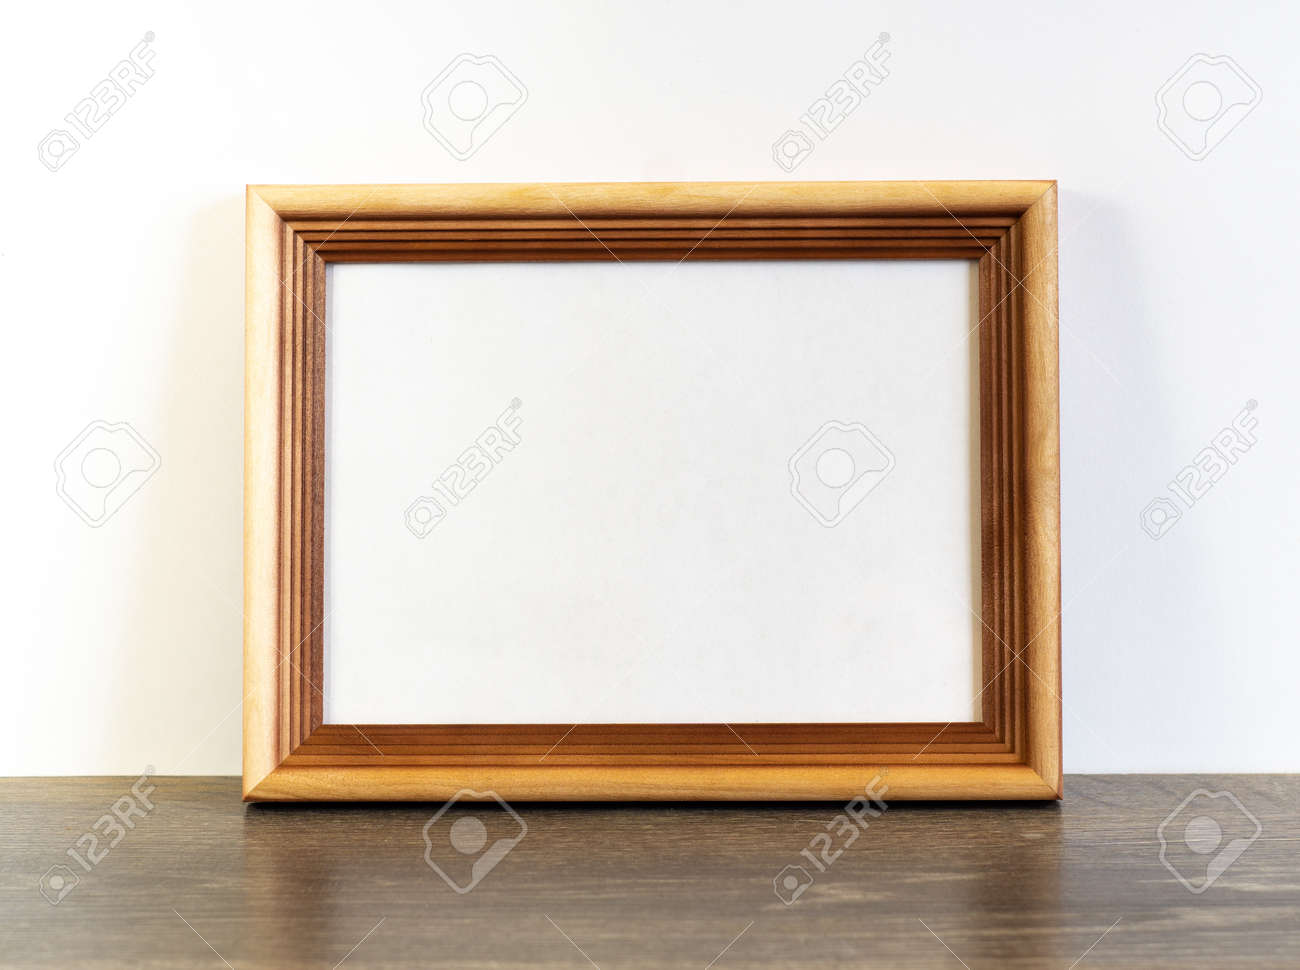 Frame mockup with horizontal wooden frame on white wall background - 136851255